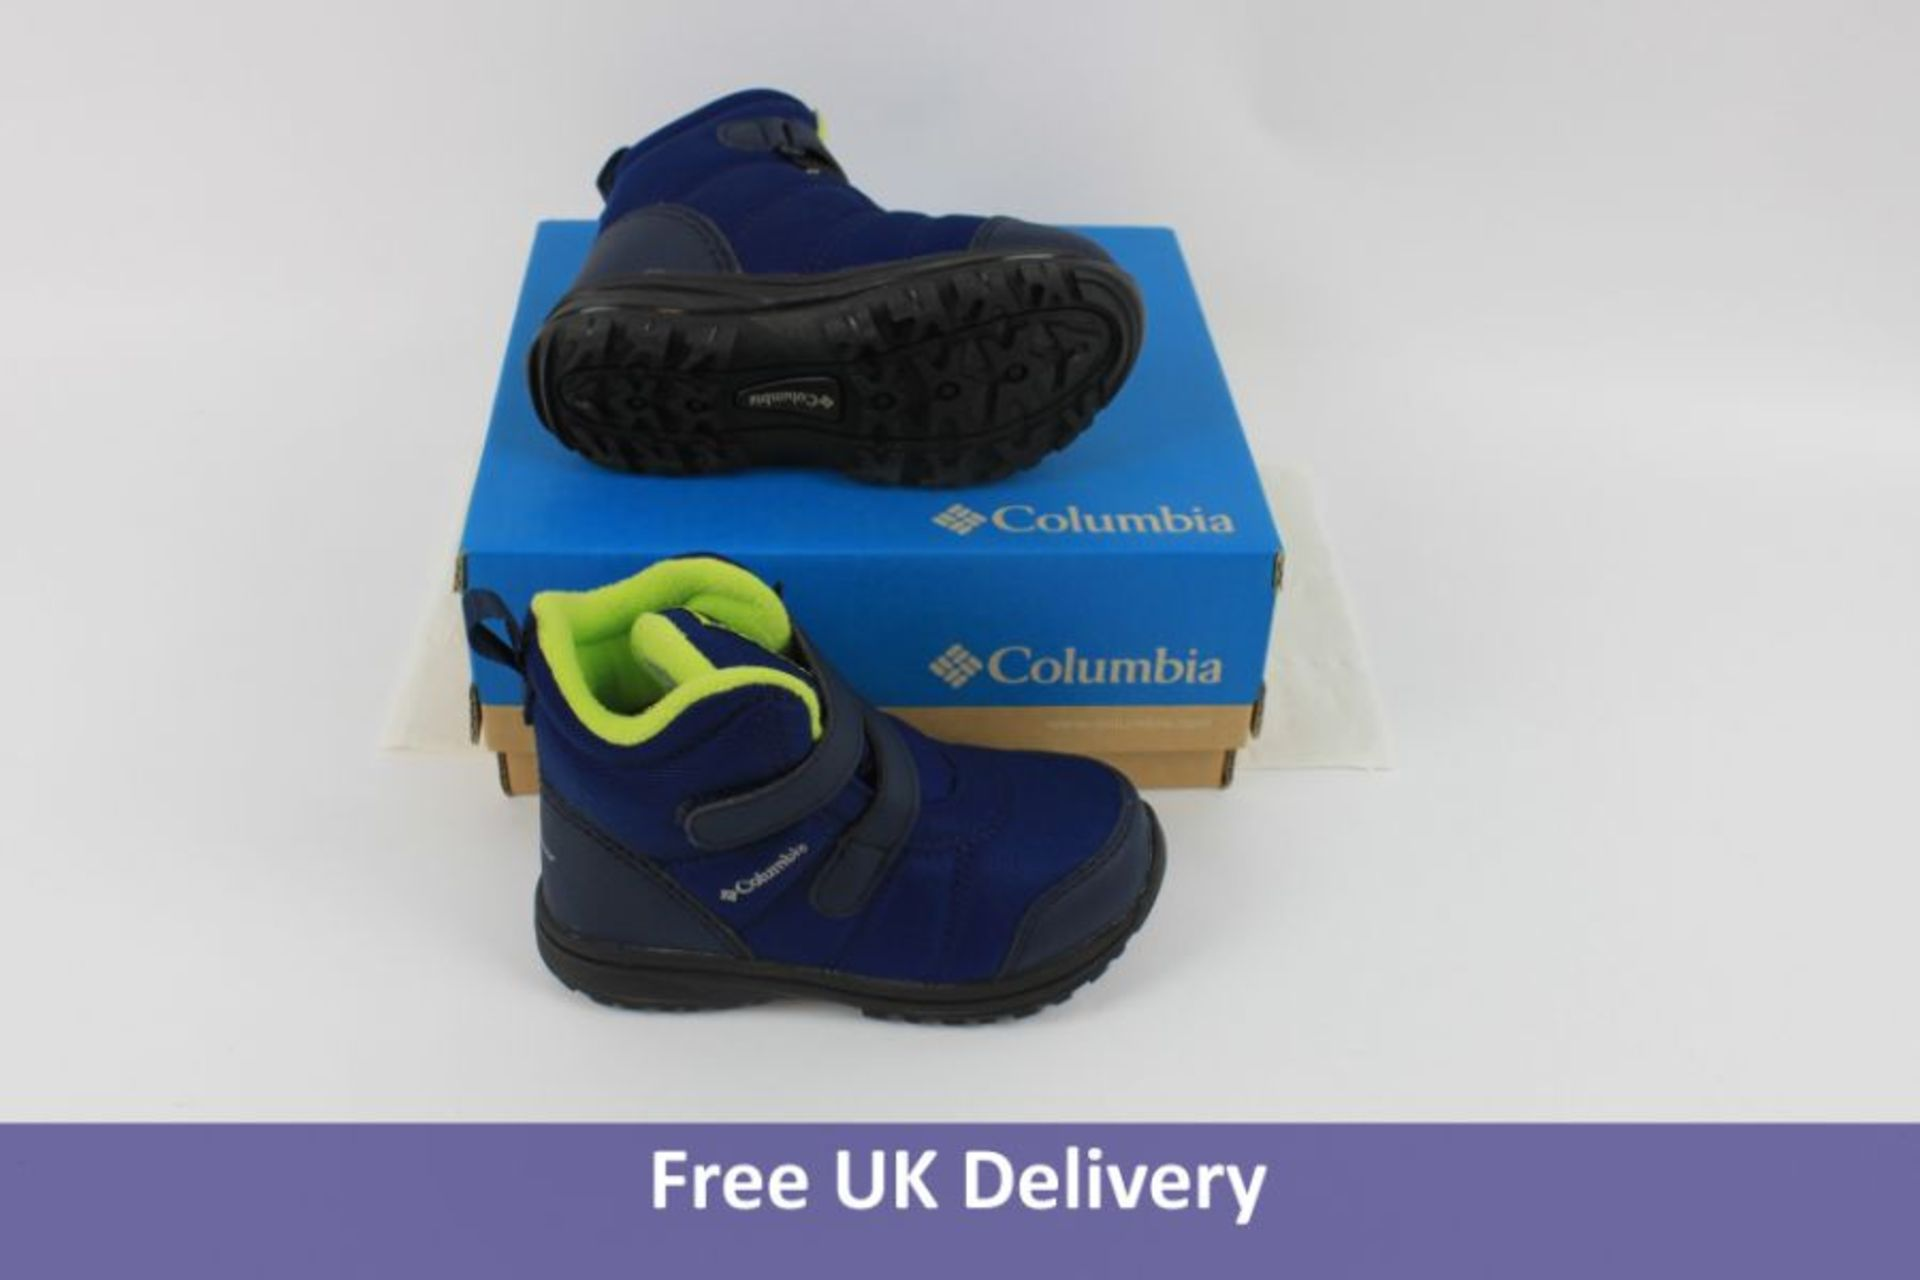 Two items of Children's Footwear